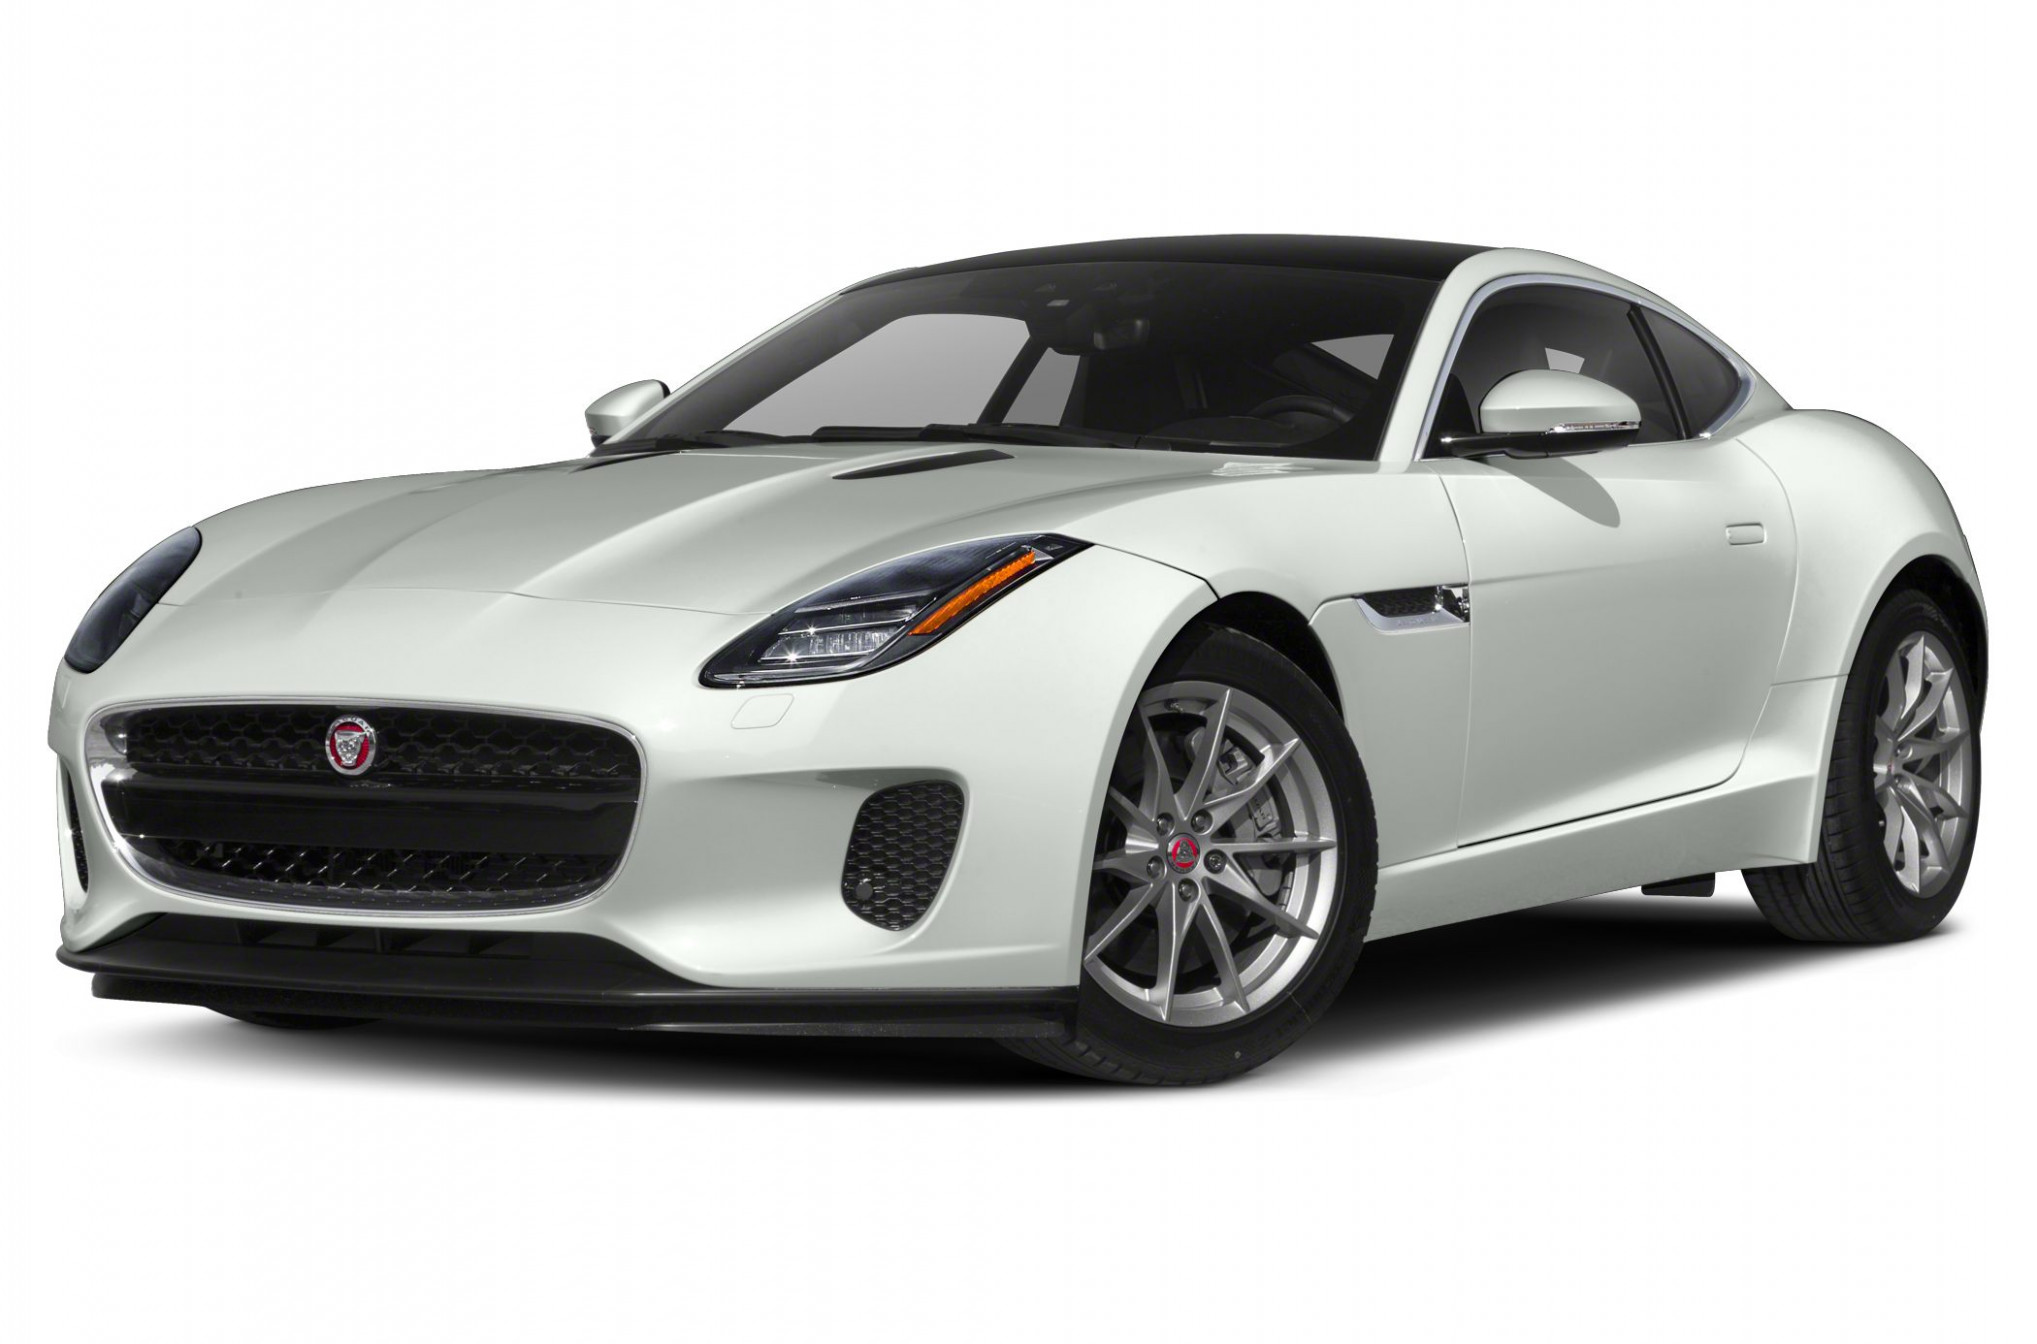 8 Jaguar F-TYPE P8 8dr Rear-wheel Drive Coupe Pricing and Options